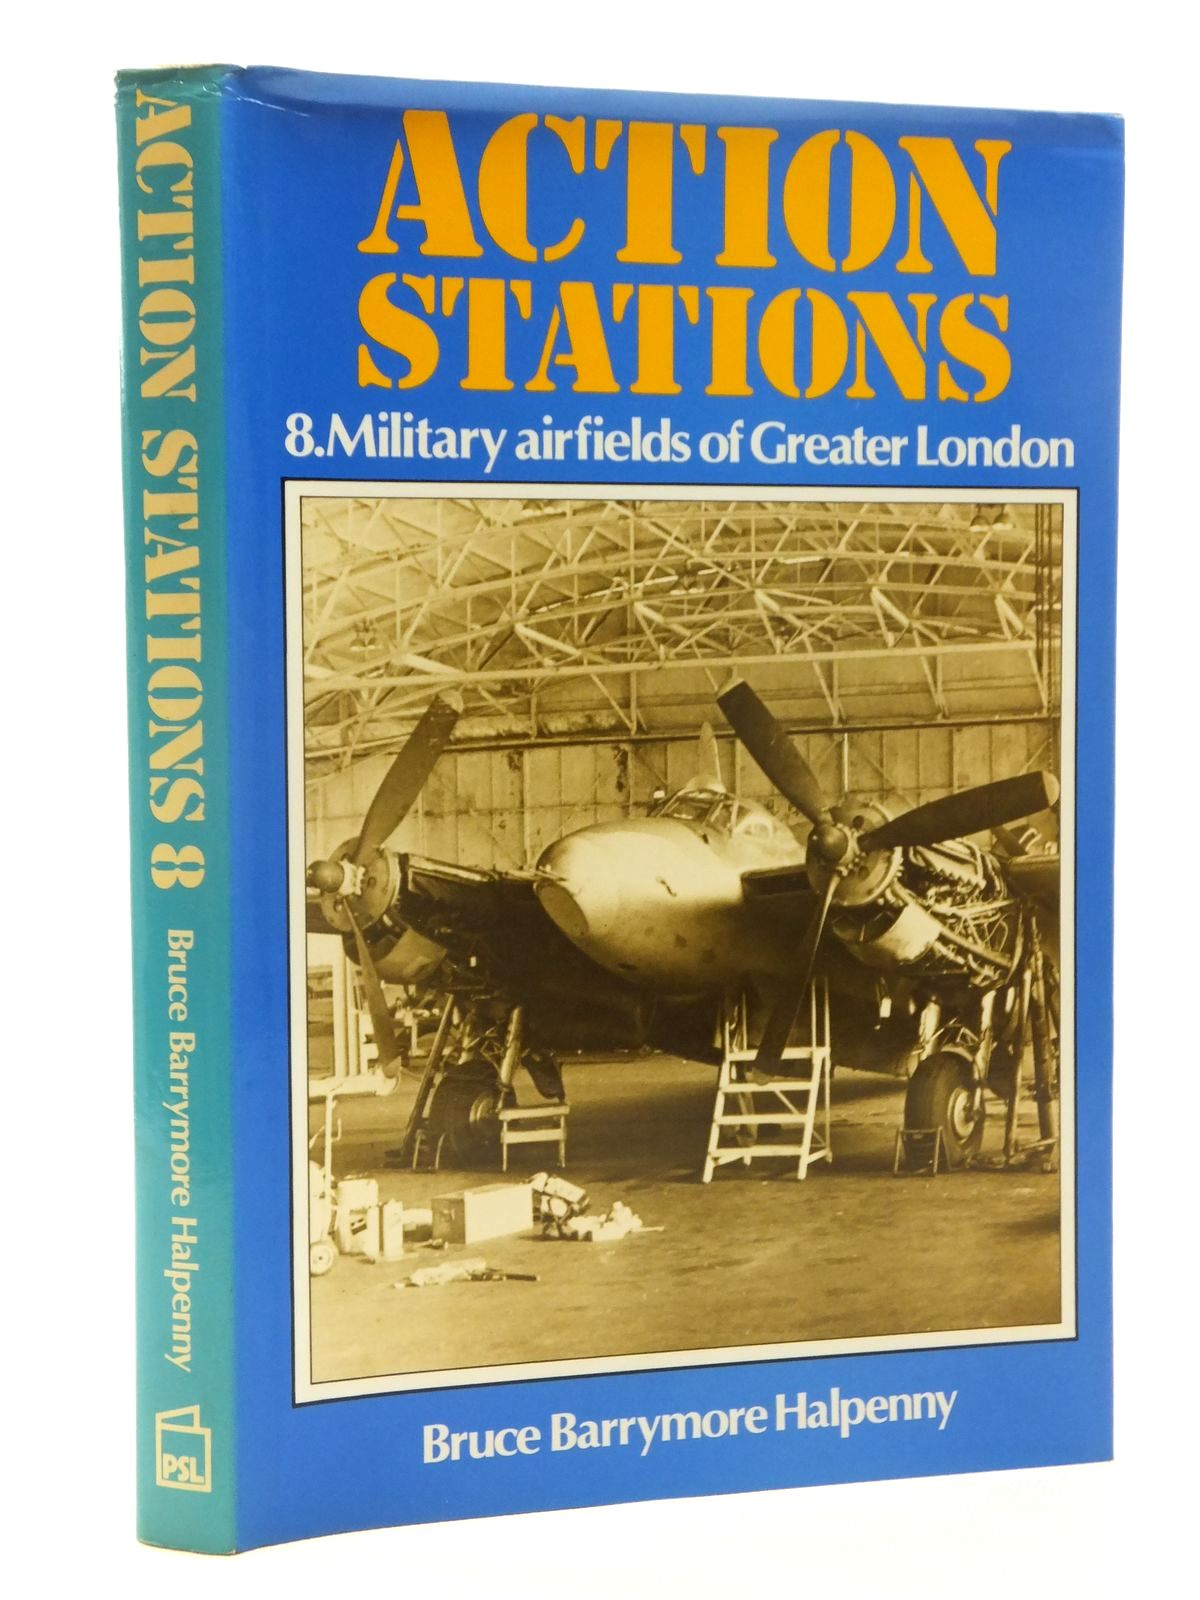 Photo of ACTION STATIONS 8 MILITARY AIRFIELDS OF GREATER LONDON written by Halpenny, Bruce Barrymore published by Patrick Stephens (STOCK CODE: 1610100)  for sale by Stella & Rose's Books